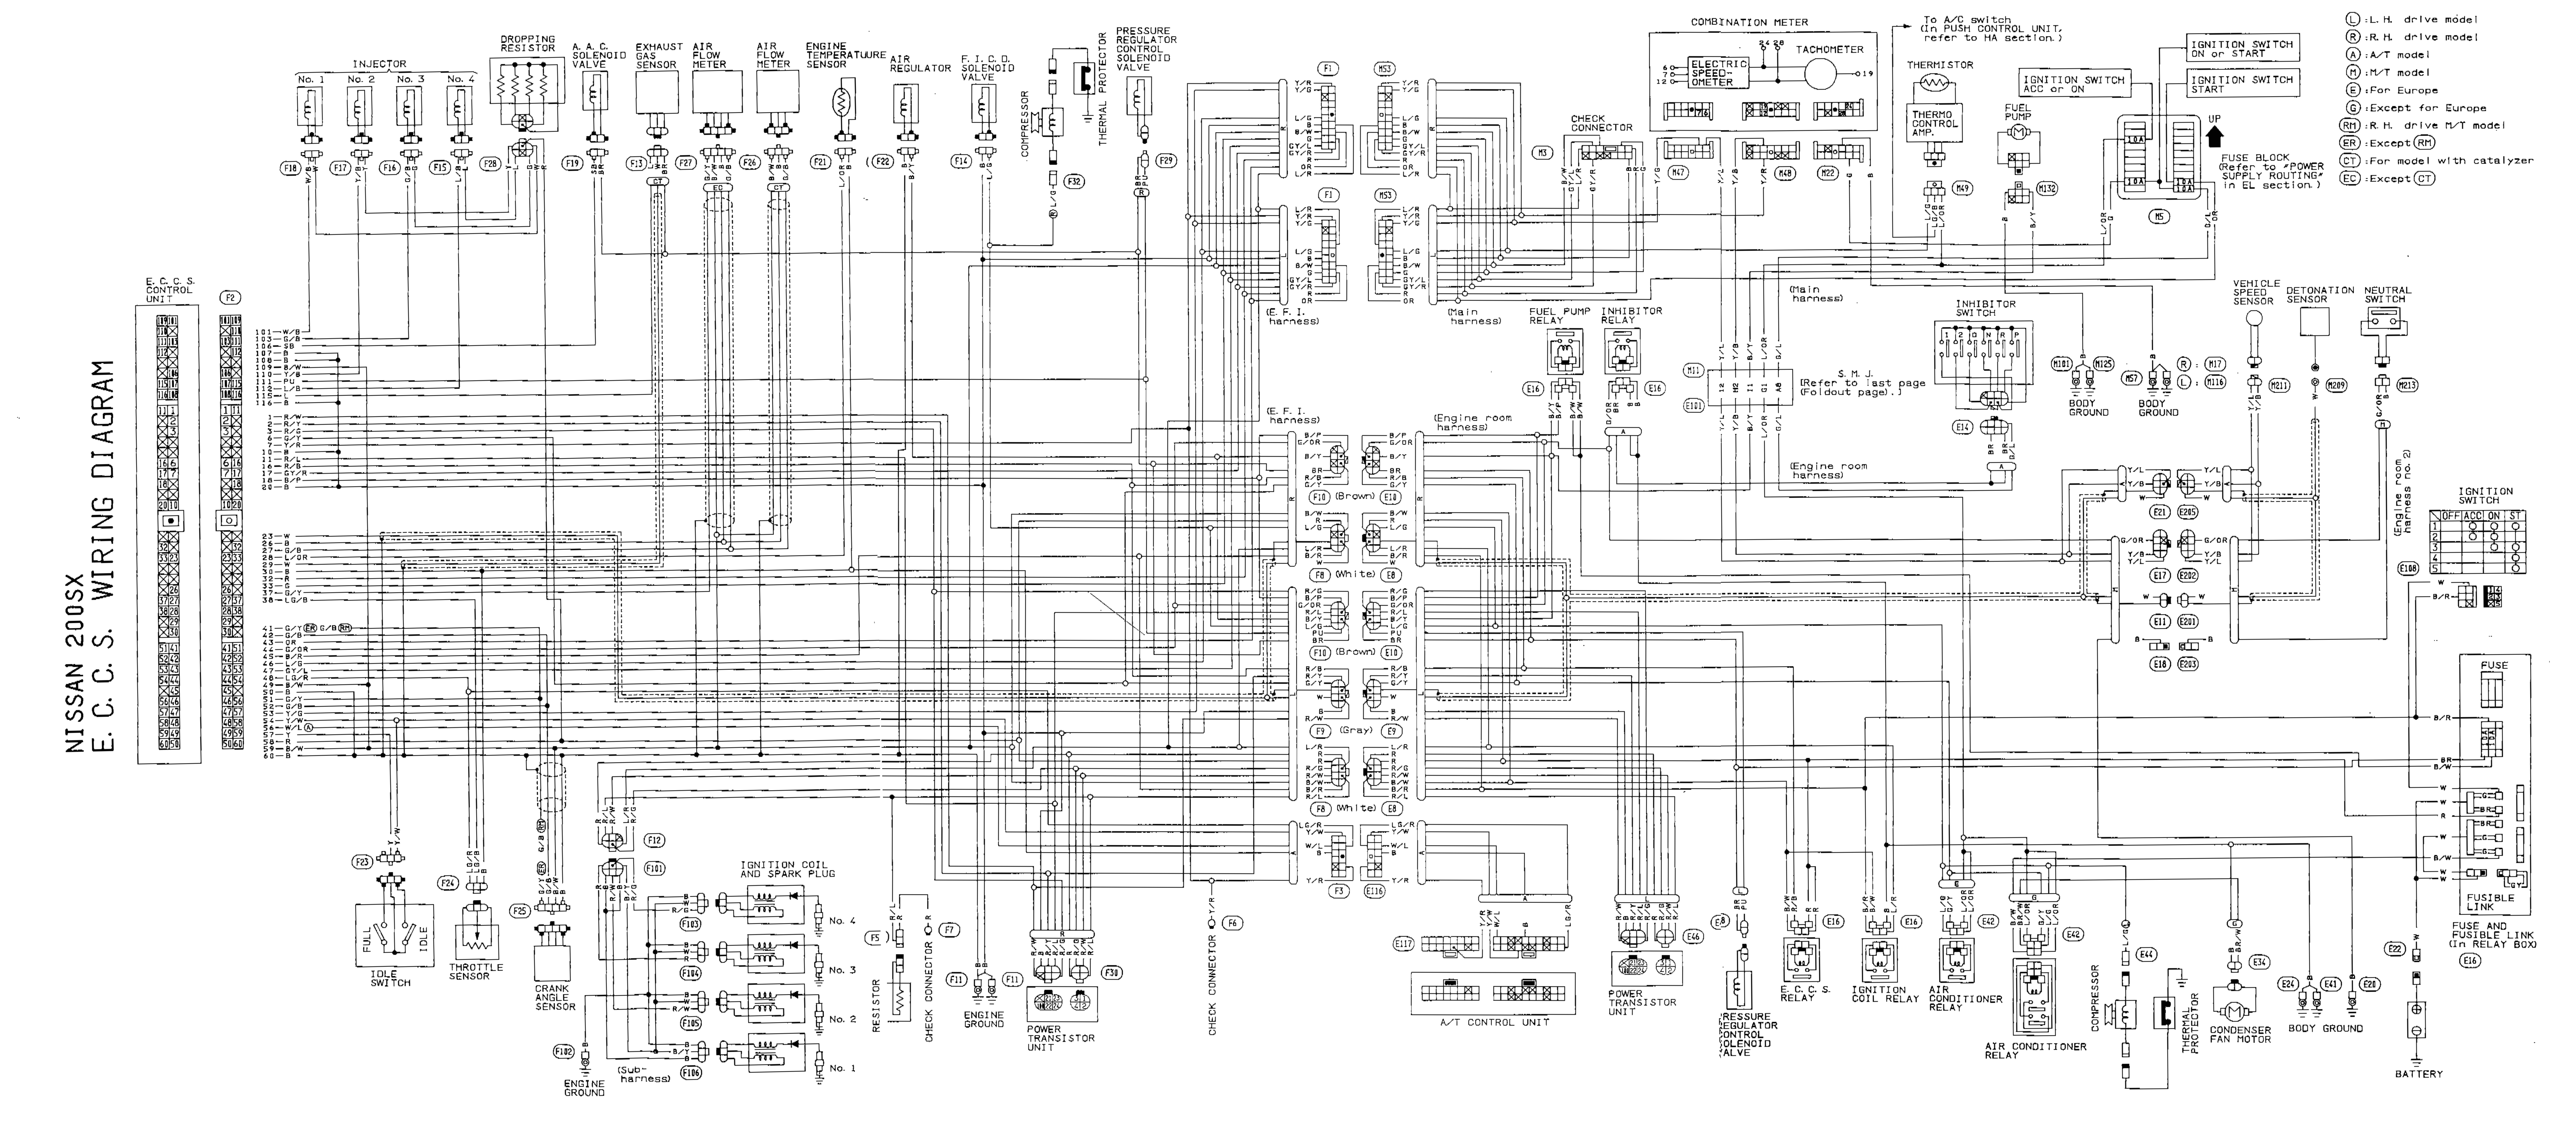 s13 wiring harness diagram wiring diagrams for sr20det wiring diagram